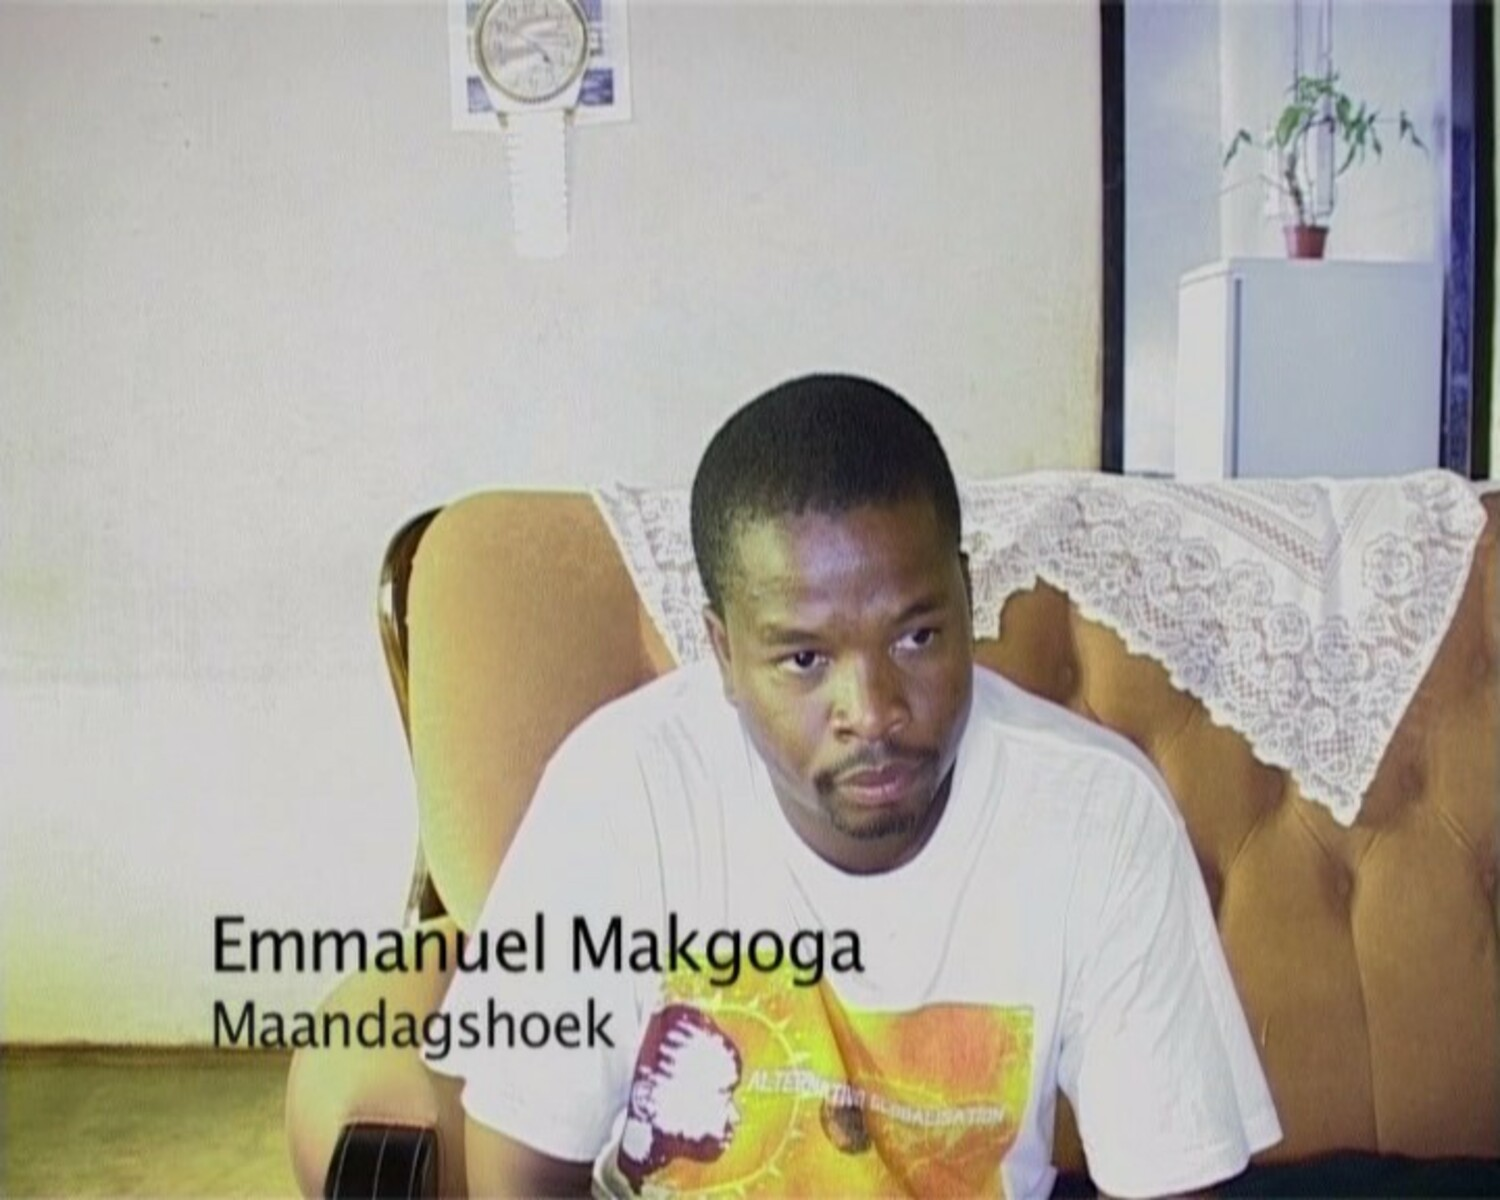 Emmanuel Makgoga, community leader/activist and spokesperson of the Maandagshoek Development Committee, during an oral history interview with Dale McKinley and Ahmed Veriava.